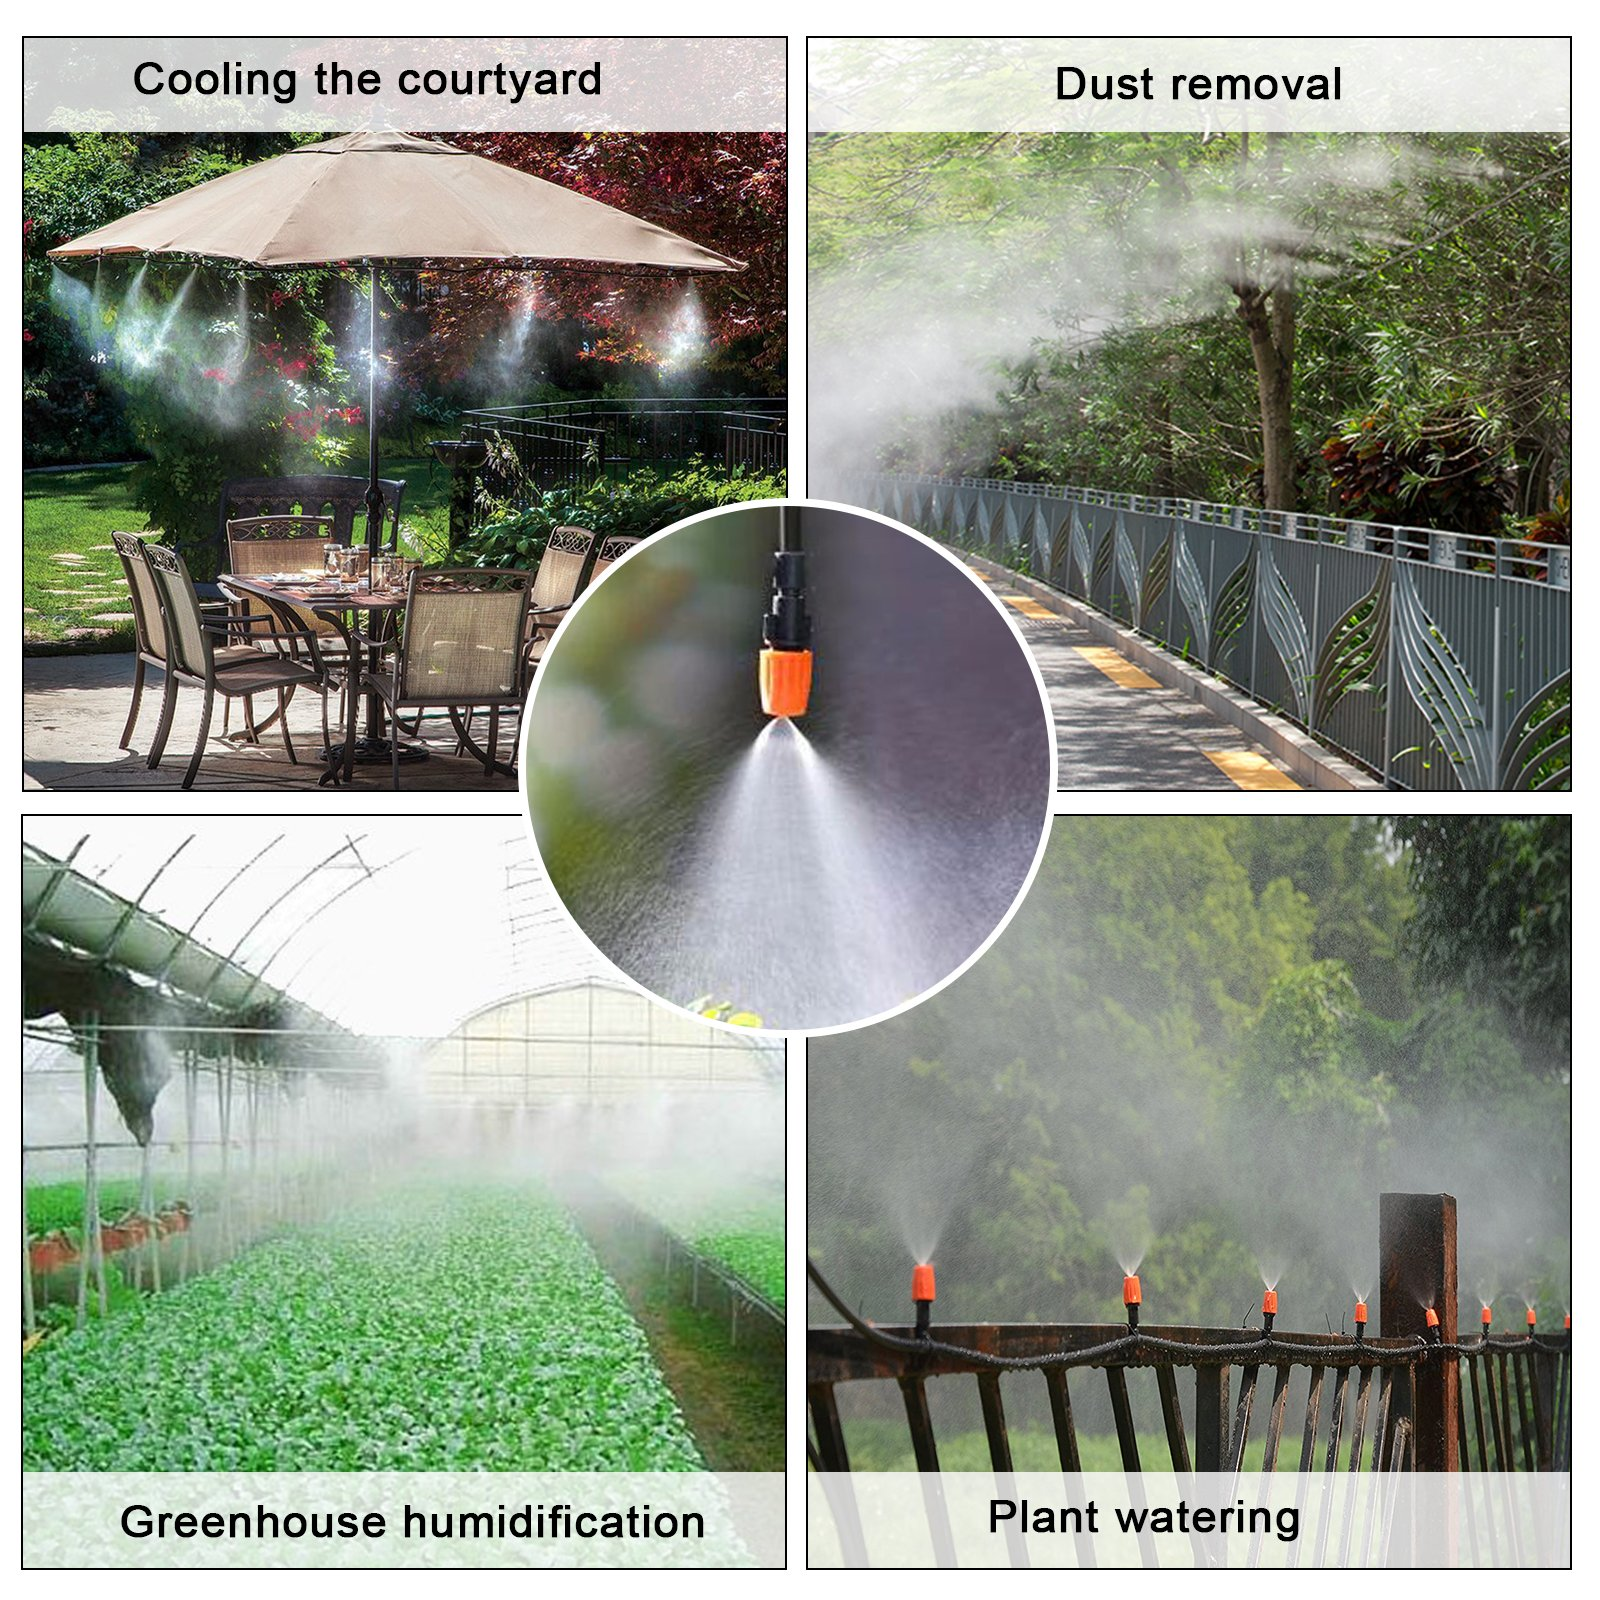 """MIXC 1/4-inch Drip Irrigation Kits Accessories Misting Cooling System with 50ft 1/4"""" Blank Distribution Tubing Hose, 20pcs Misters, 20pcs Barbed Fittings, 3pcs Quick Adapter, Model: GG0A"""